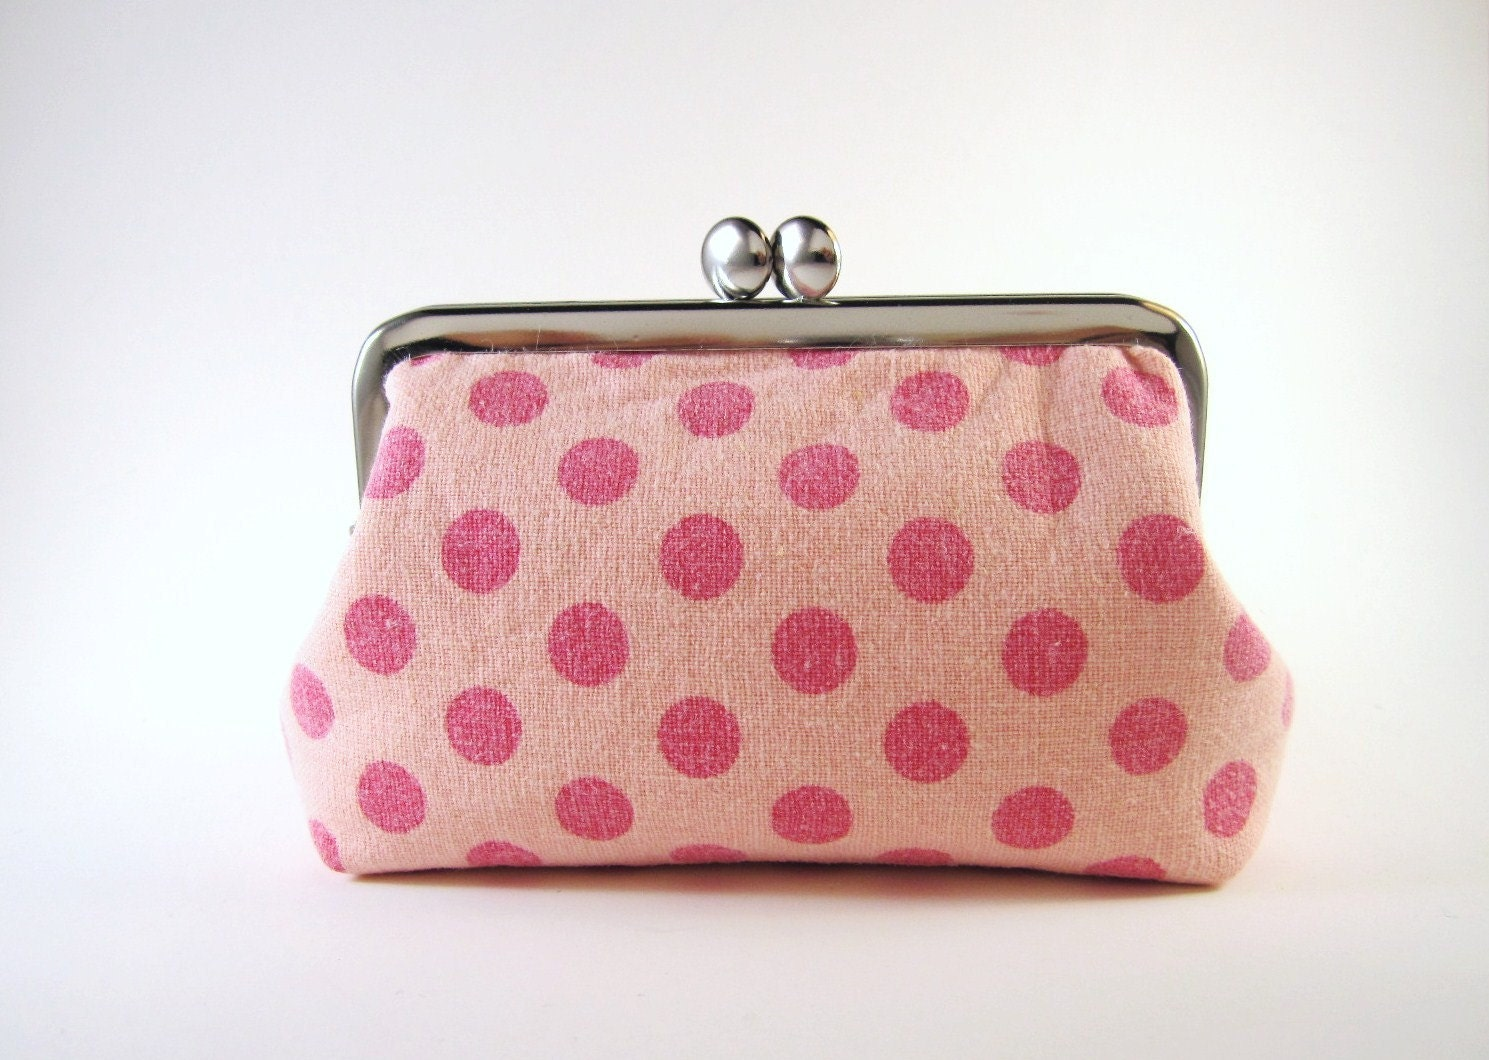 digital camera case- pink dots on light pink